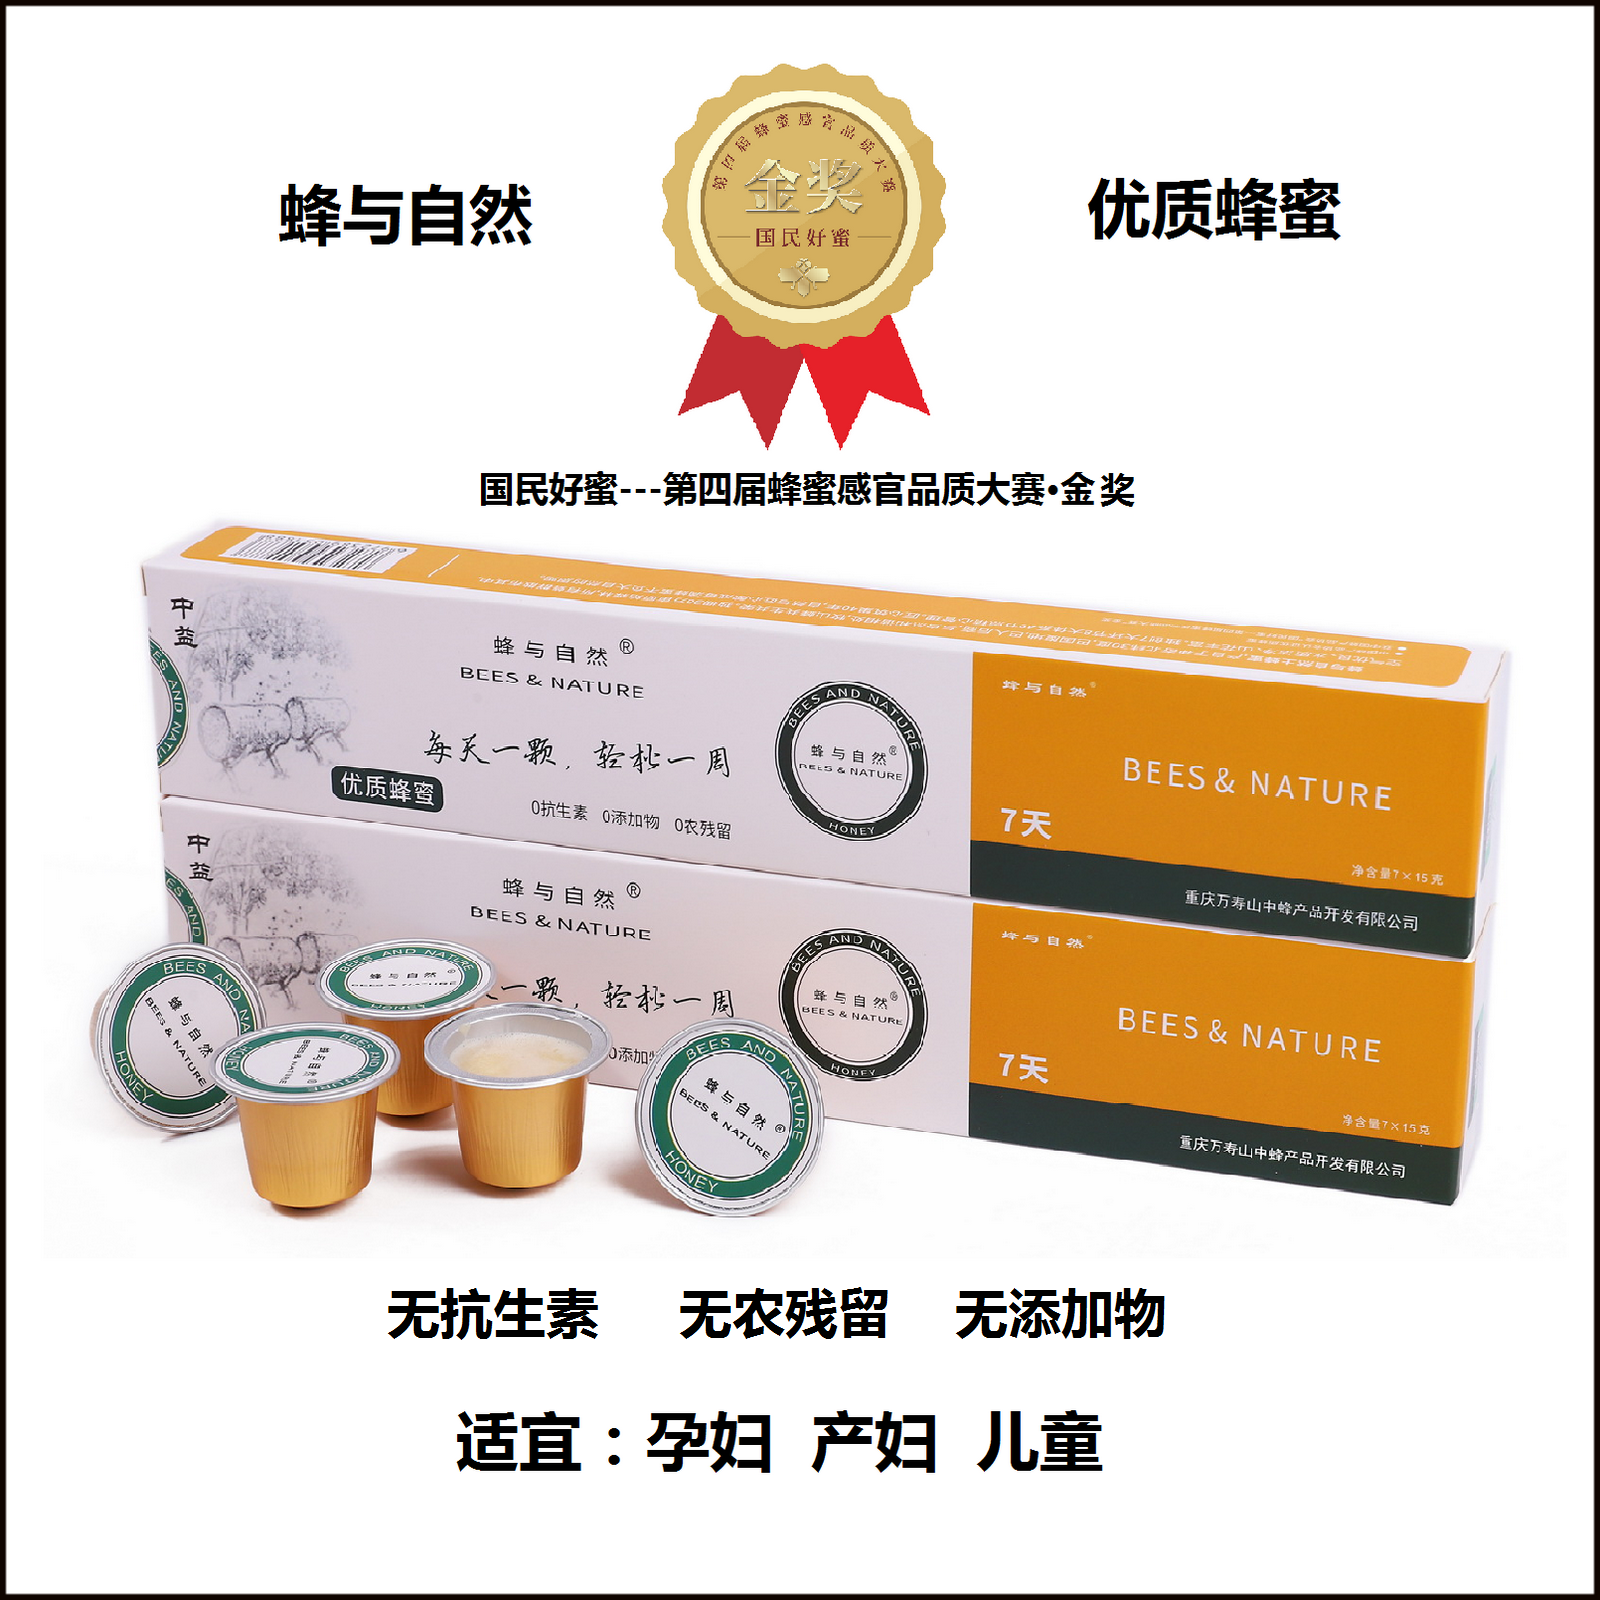 Bee and nature Gold Award for high quality natural pure herbal medicine